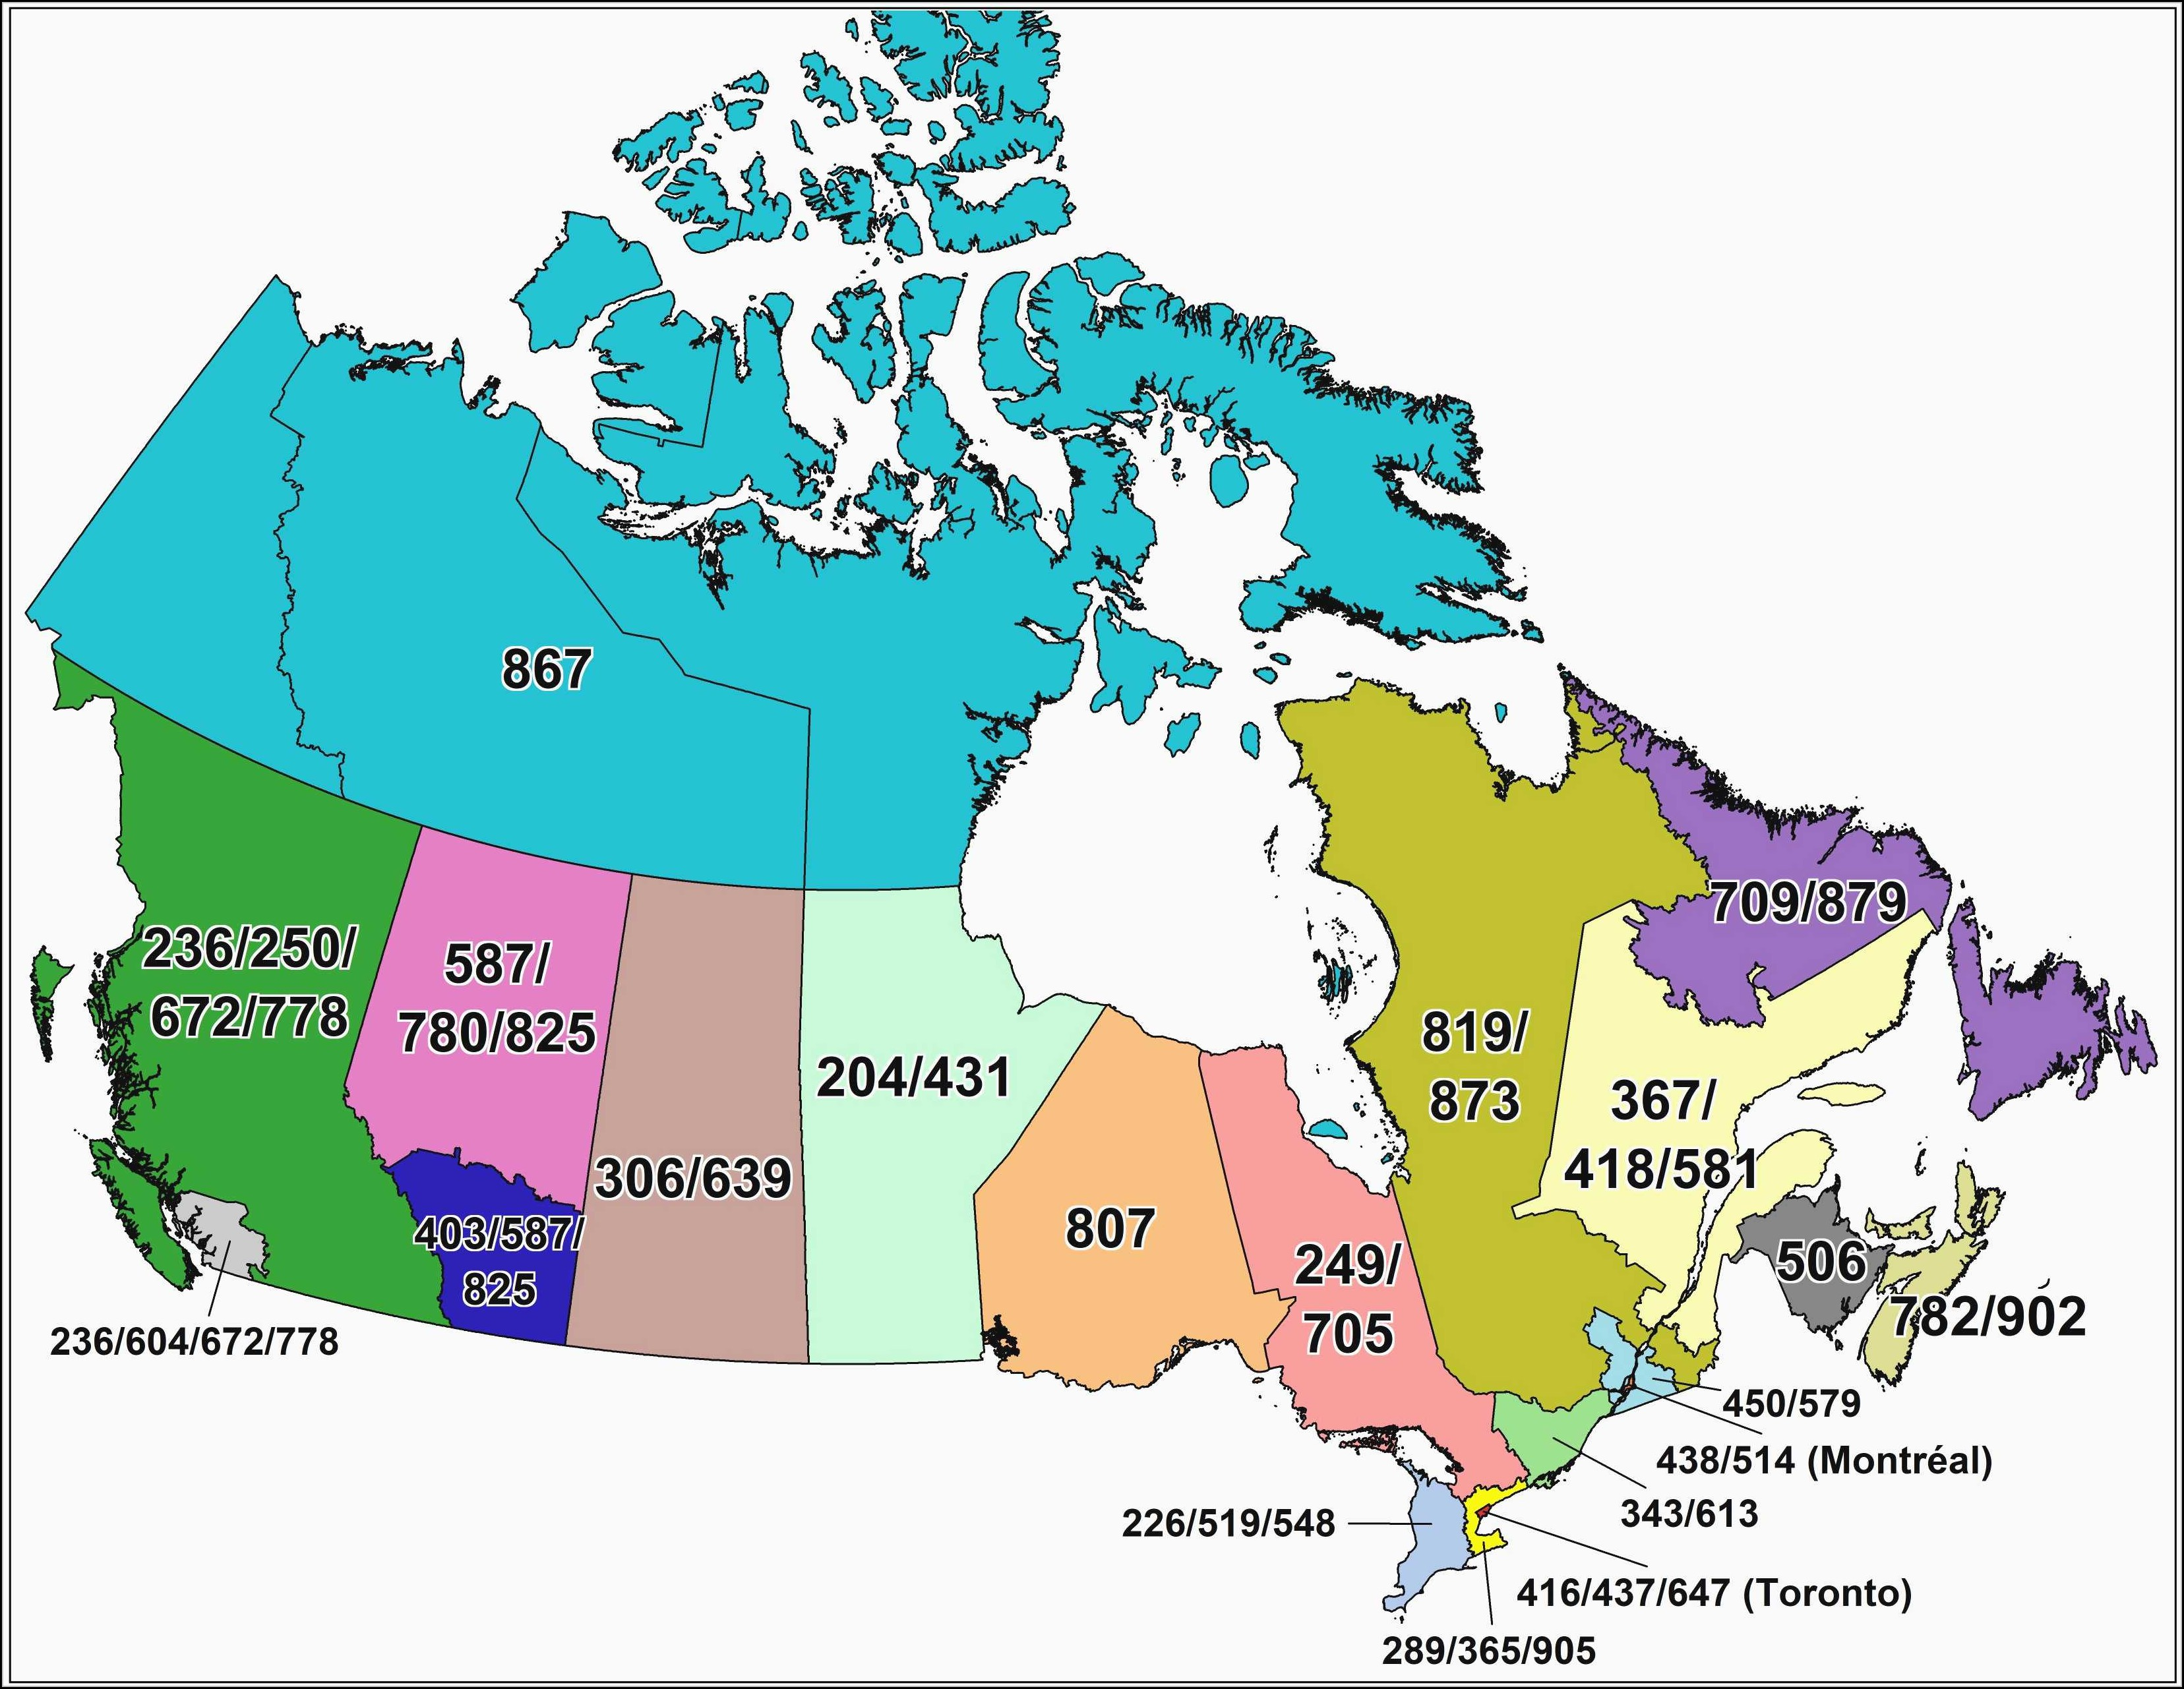 Download Map Of Canada.Garmin Maps Canada Download Map Resume Examples Jrg8dx28mq